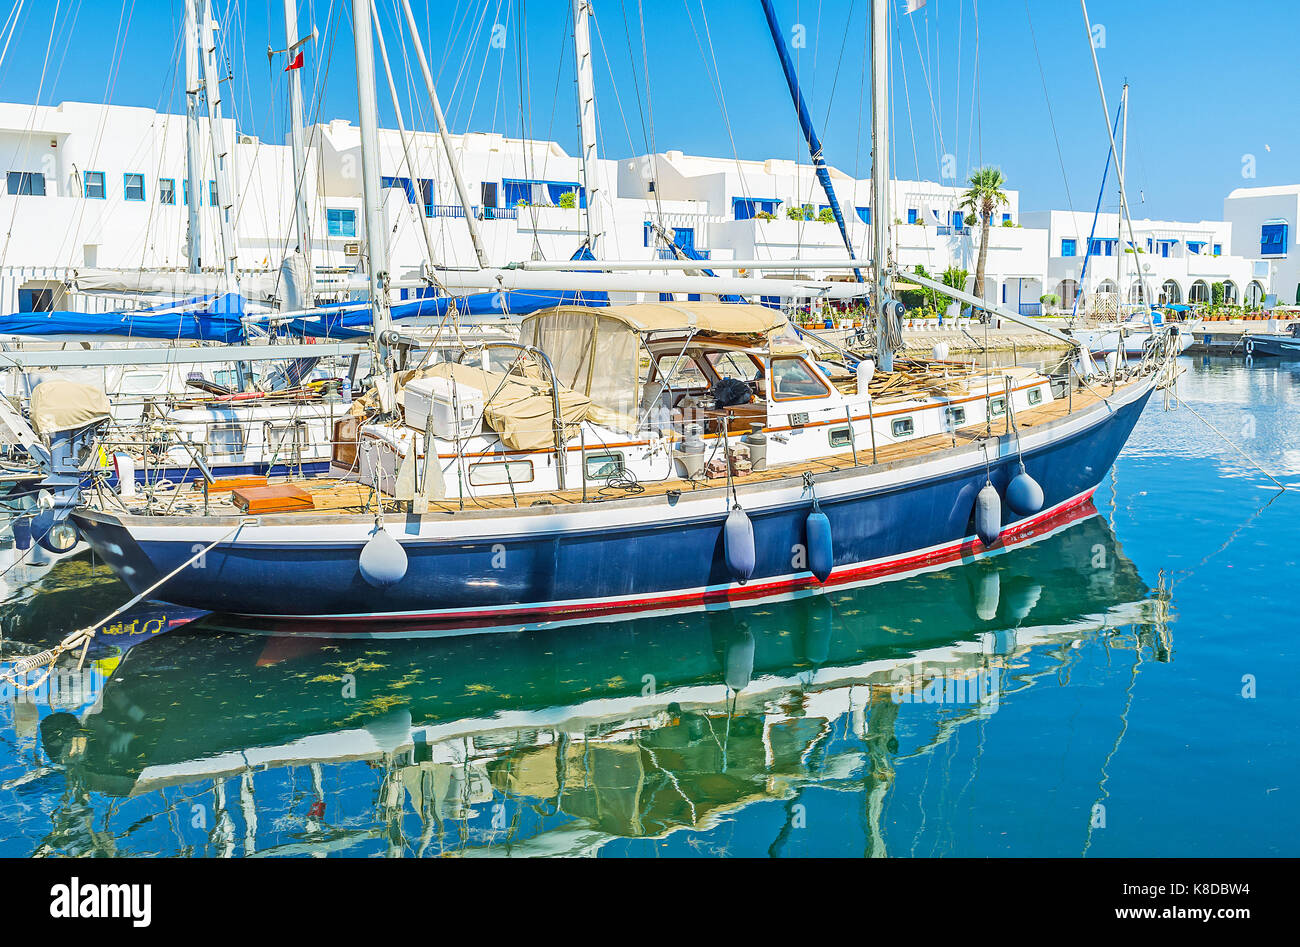 The scenic yachts in Monastir marina are perfect for the romantic trips along the coast, Tunisia. - Stock Image